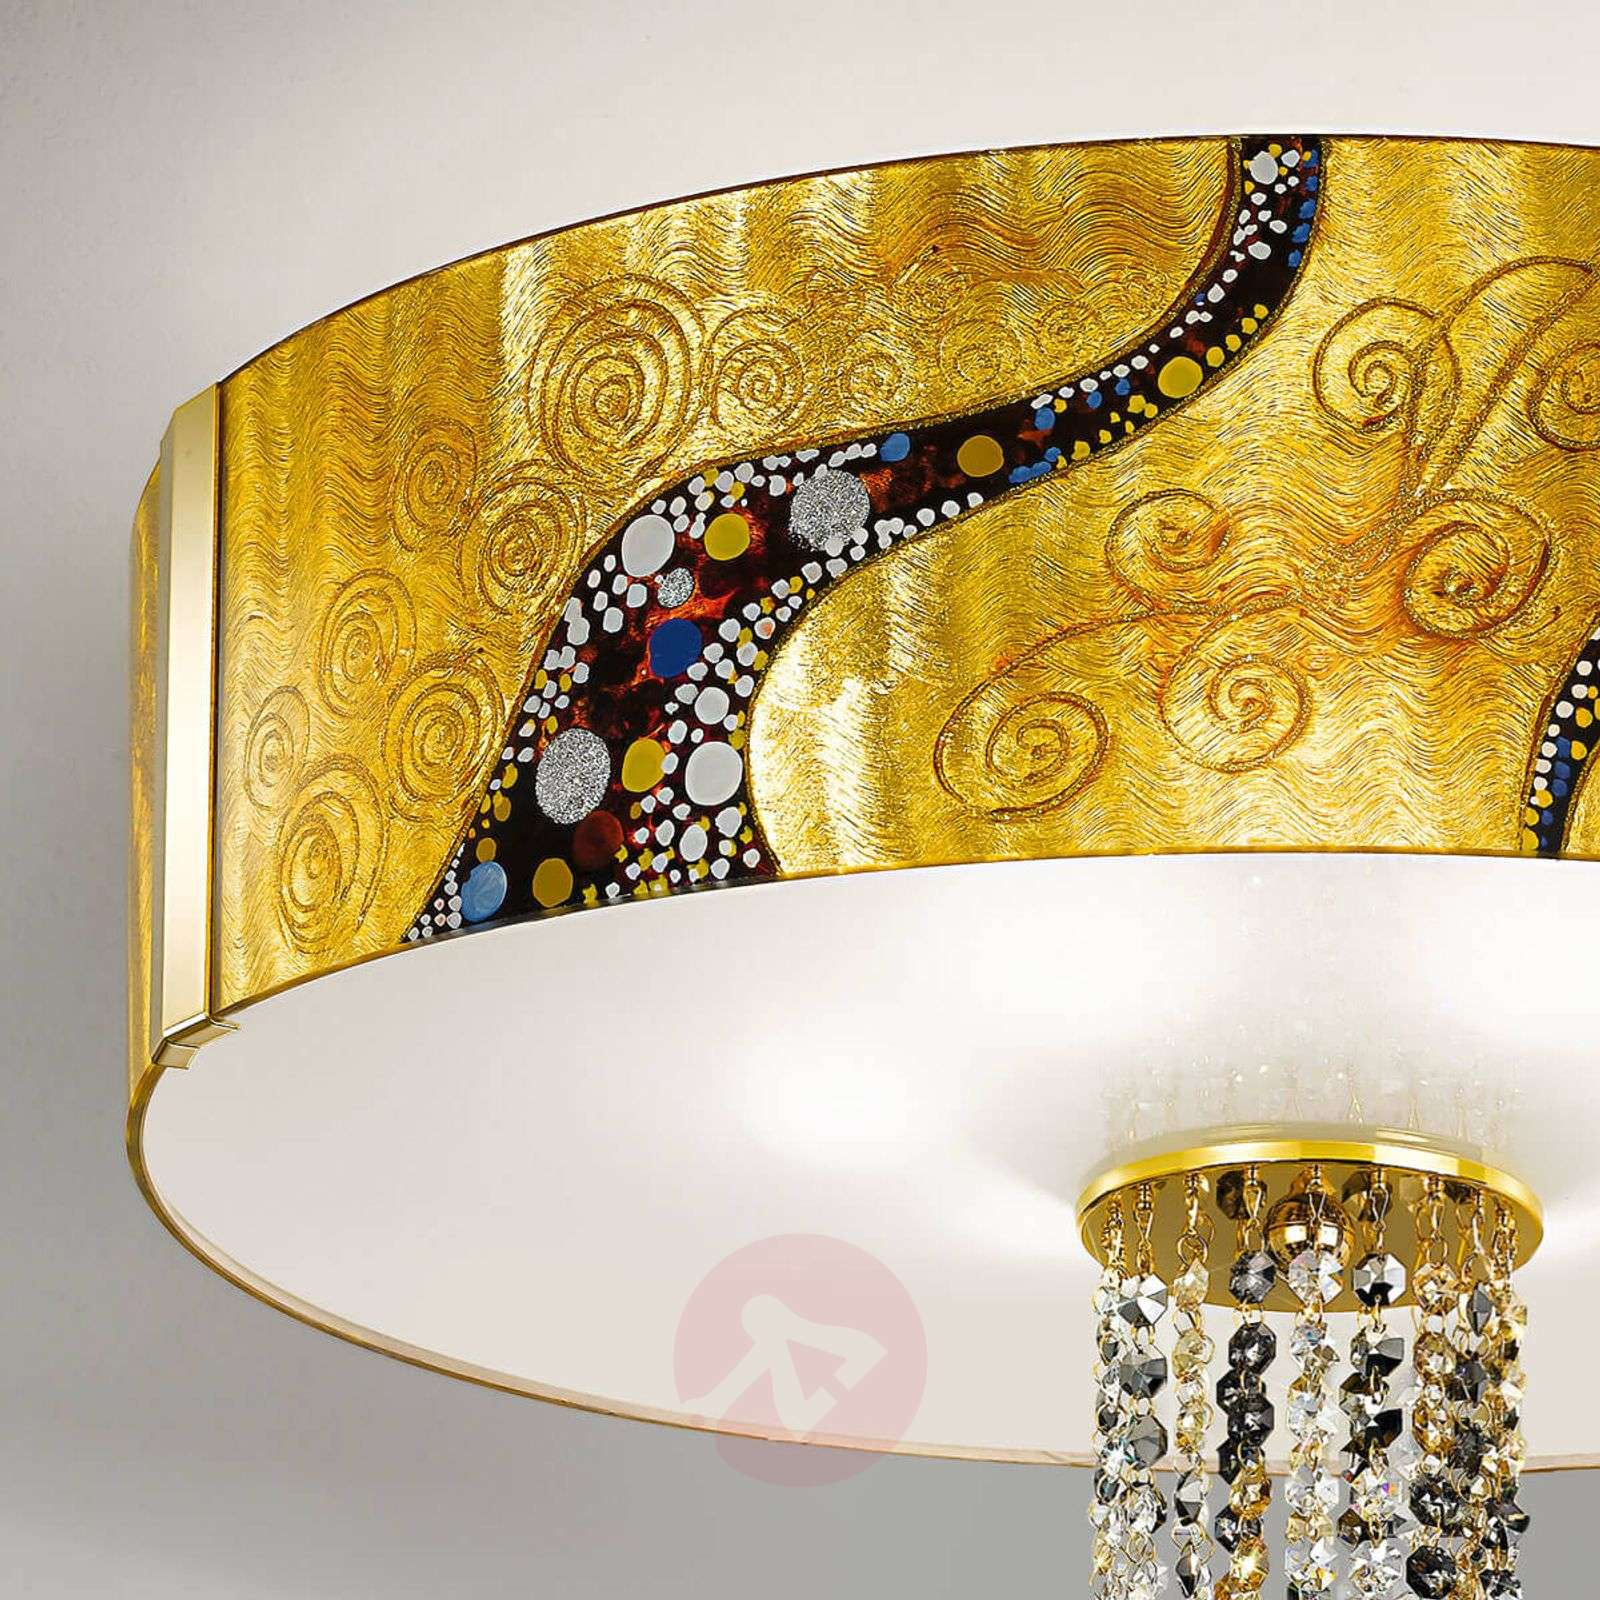 Gold coloured ceiling light emozione kiss lights gold coloured ceiling light emozione kiss 5560459 01 aloadofball Gallery